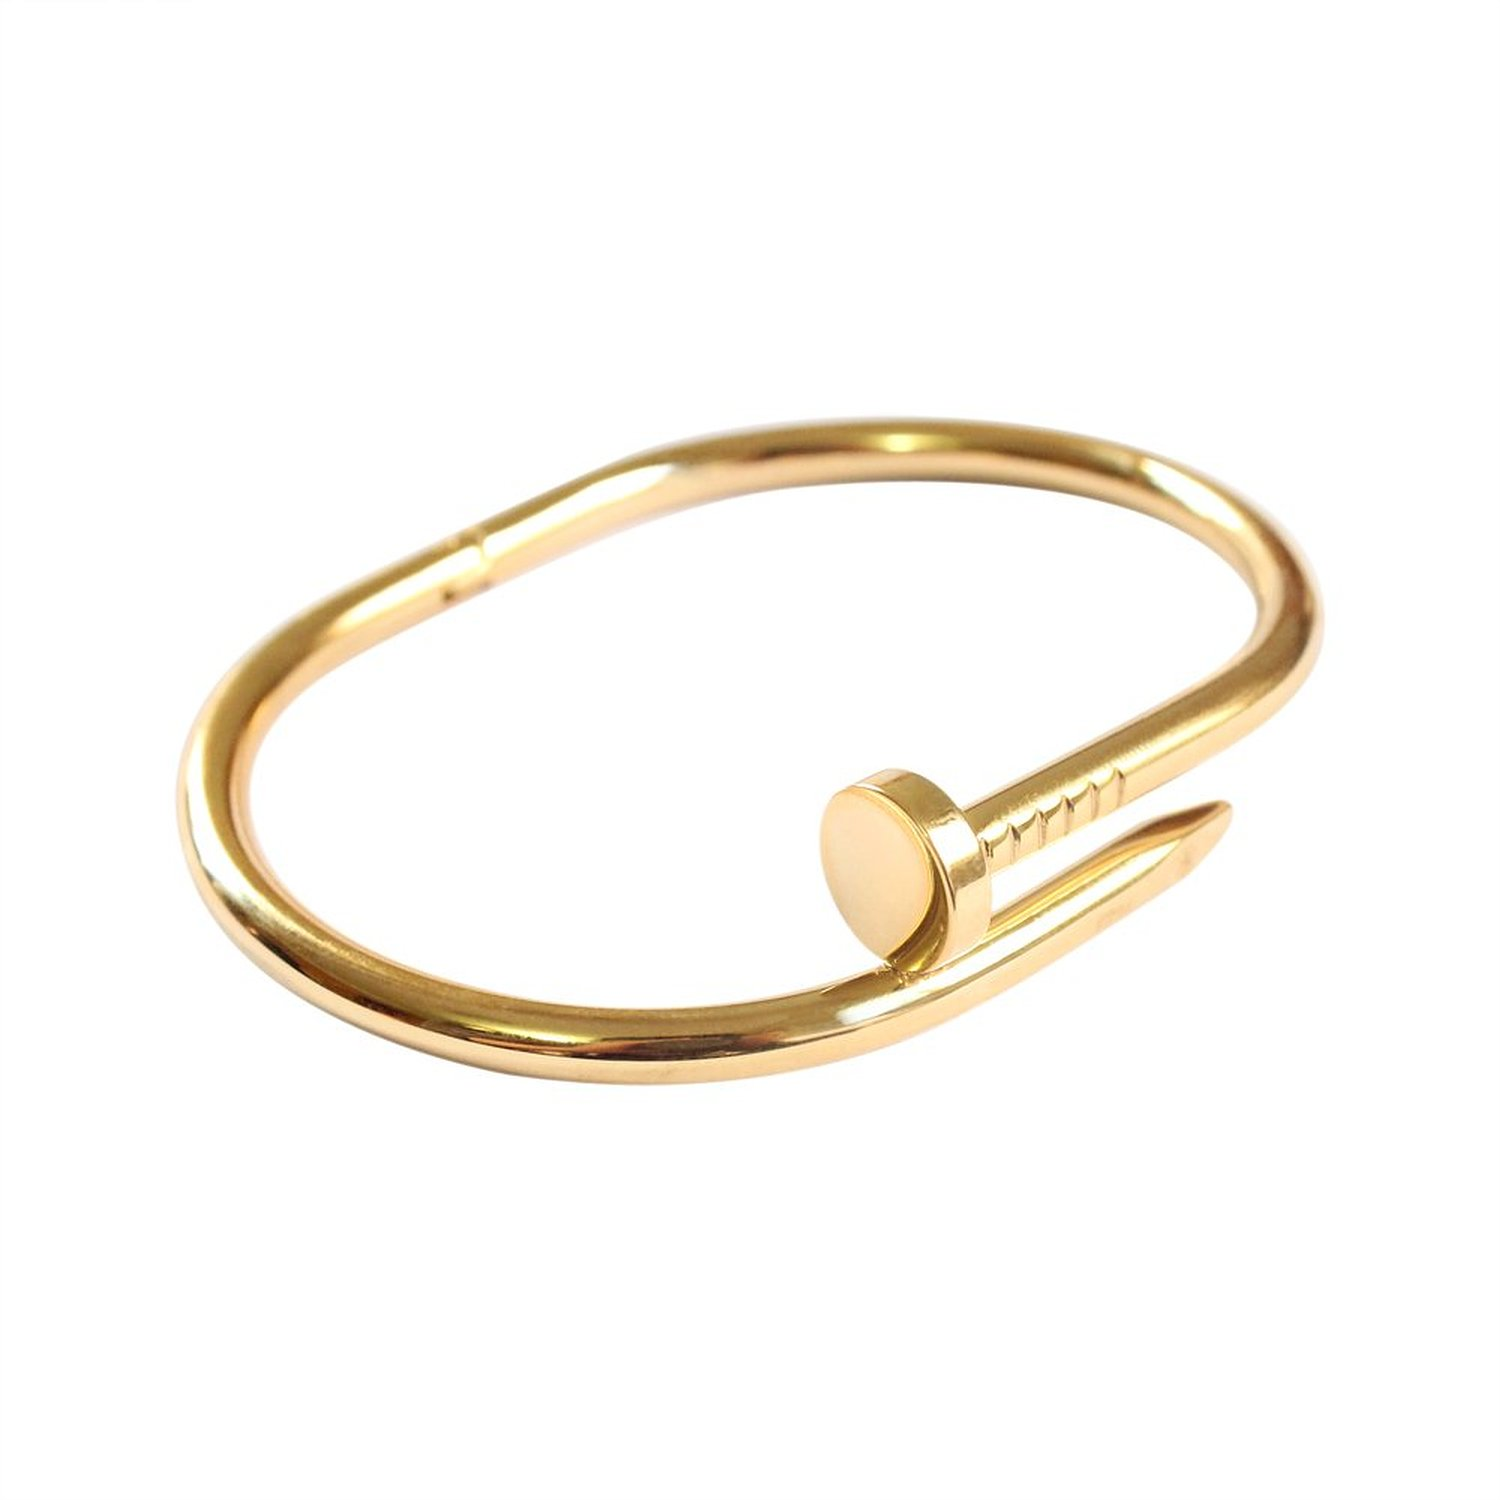 Amazon.com: 8% Off 18k Gold Plated Titanium Steel Wire Nail Bracelet (6.5 Inches): Jewelry